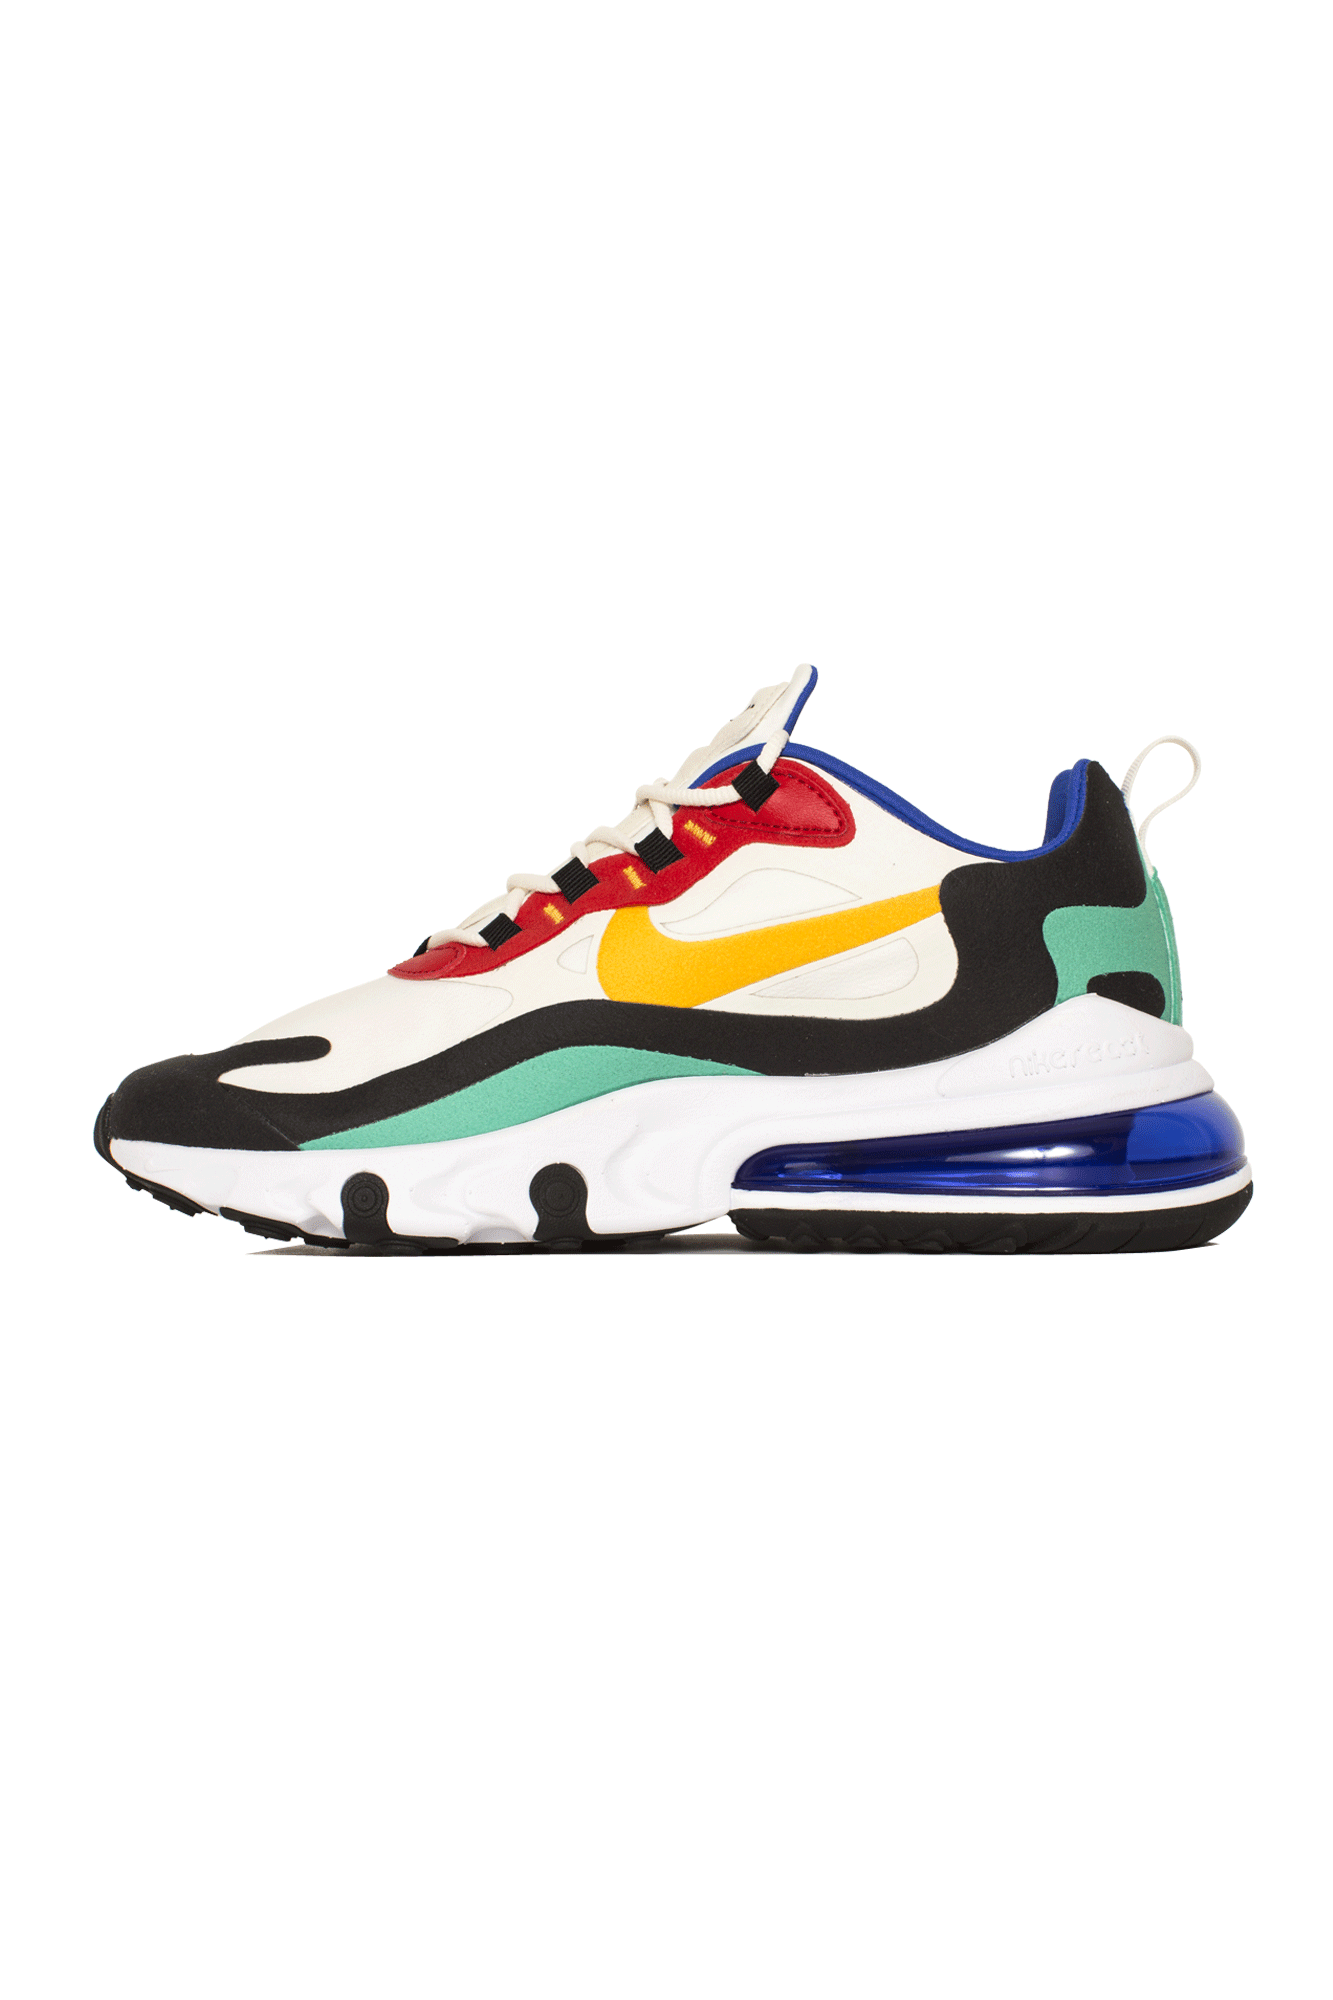 Nike Sneakers AIR MAX 270 REACT Bianco AO4971-#000#002#4 - One Block Down